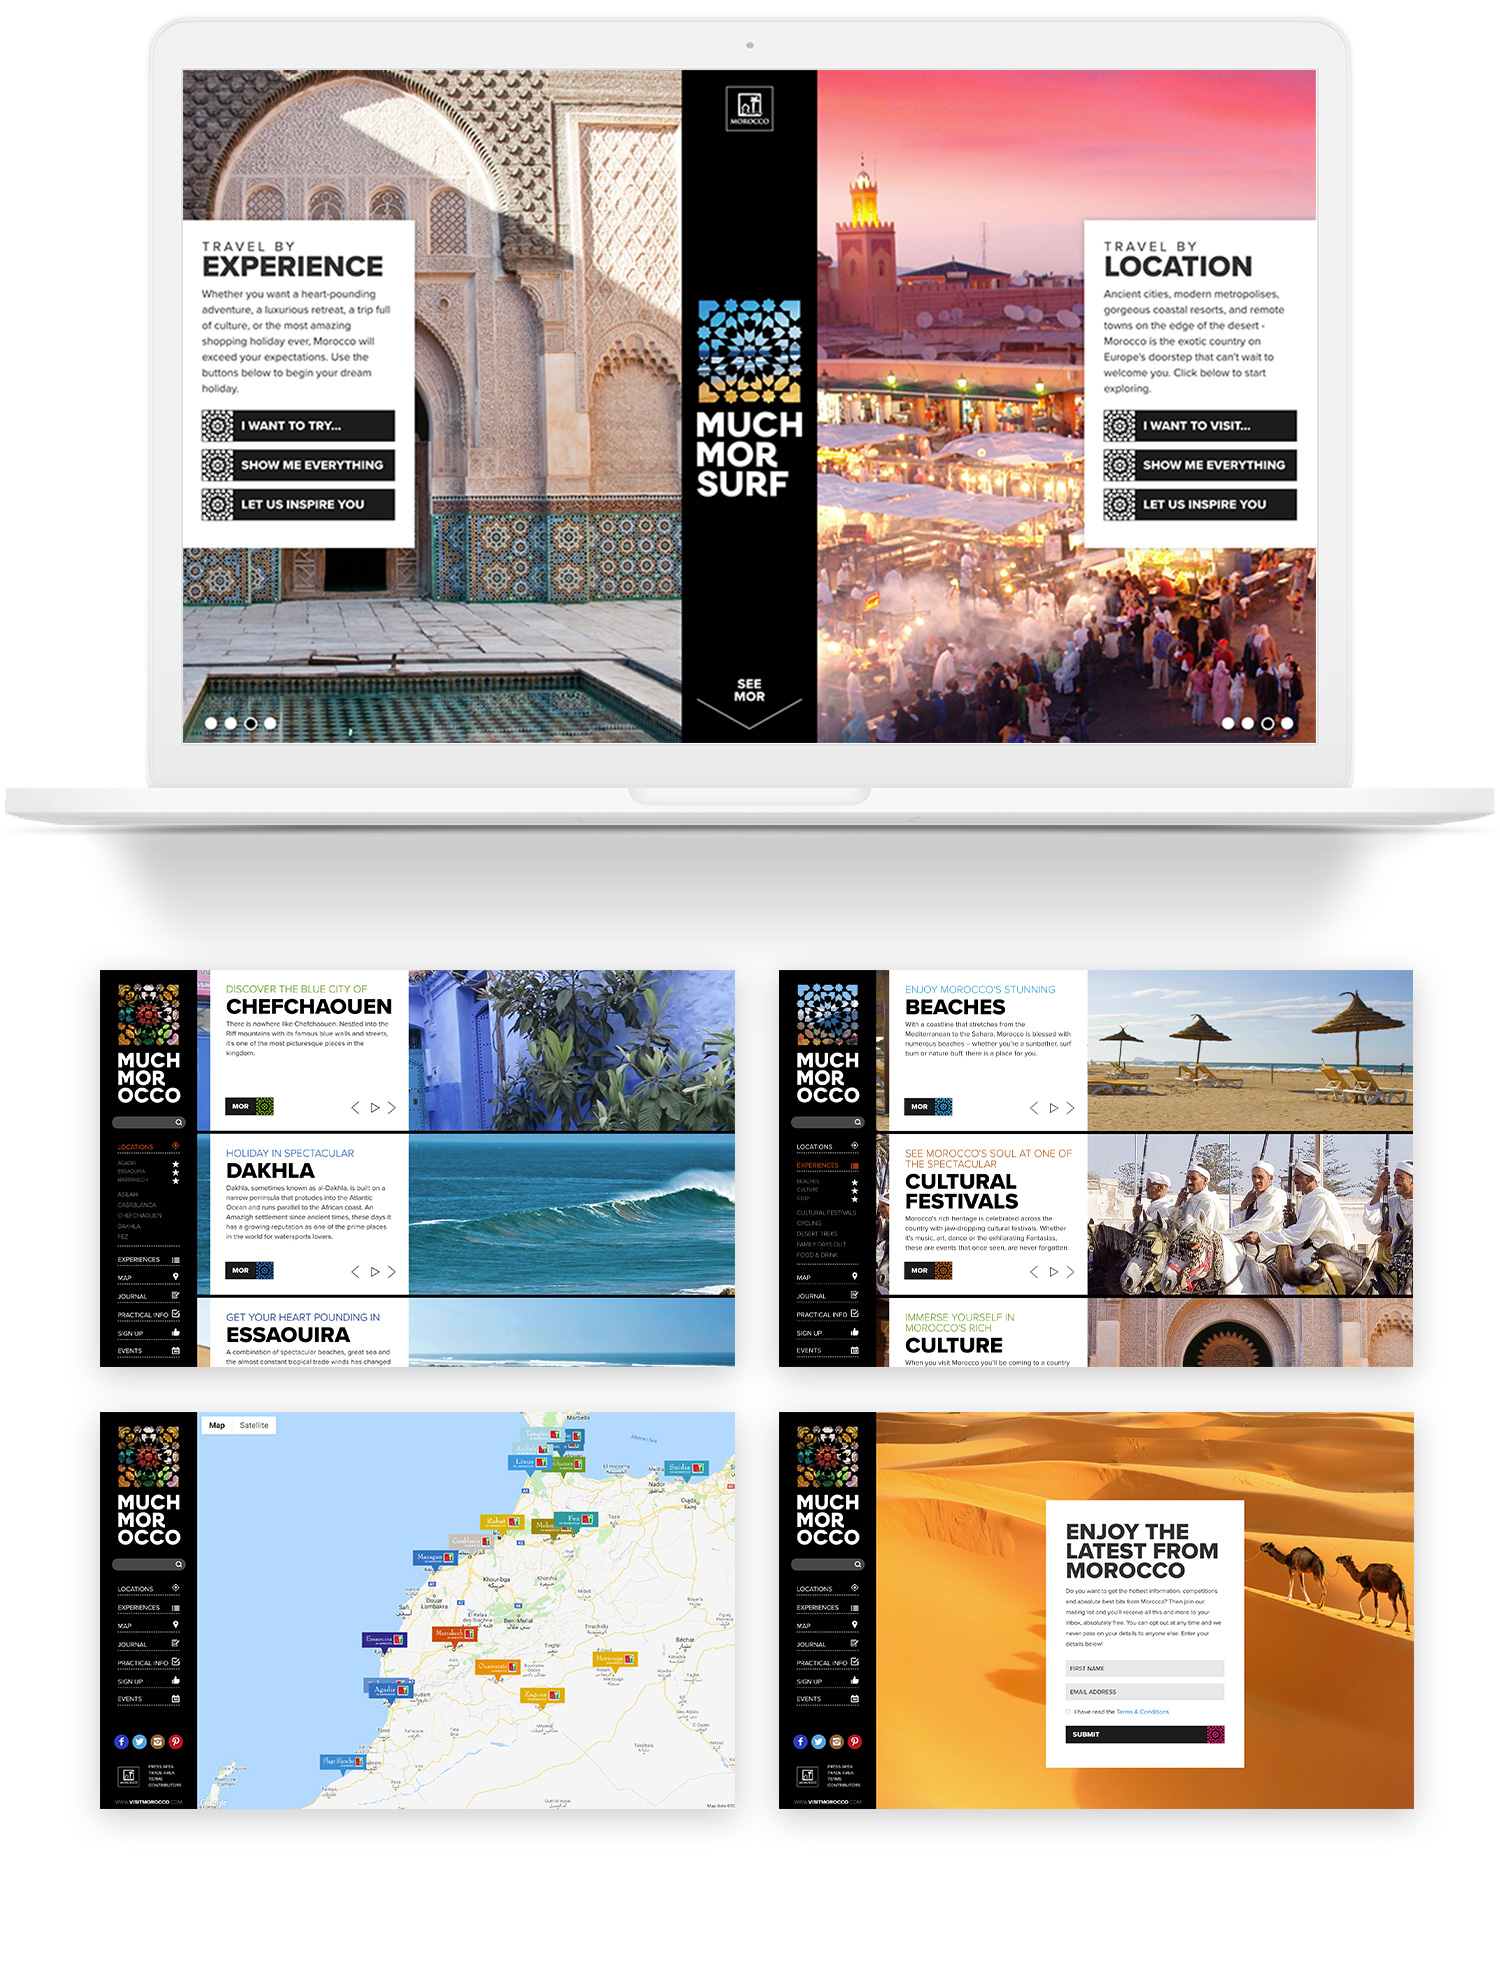 MuchMorocco webpages